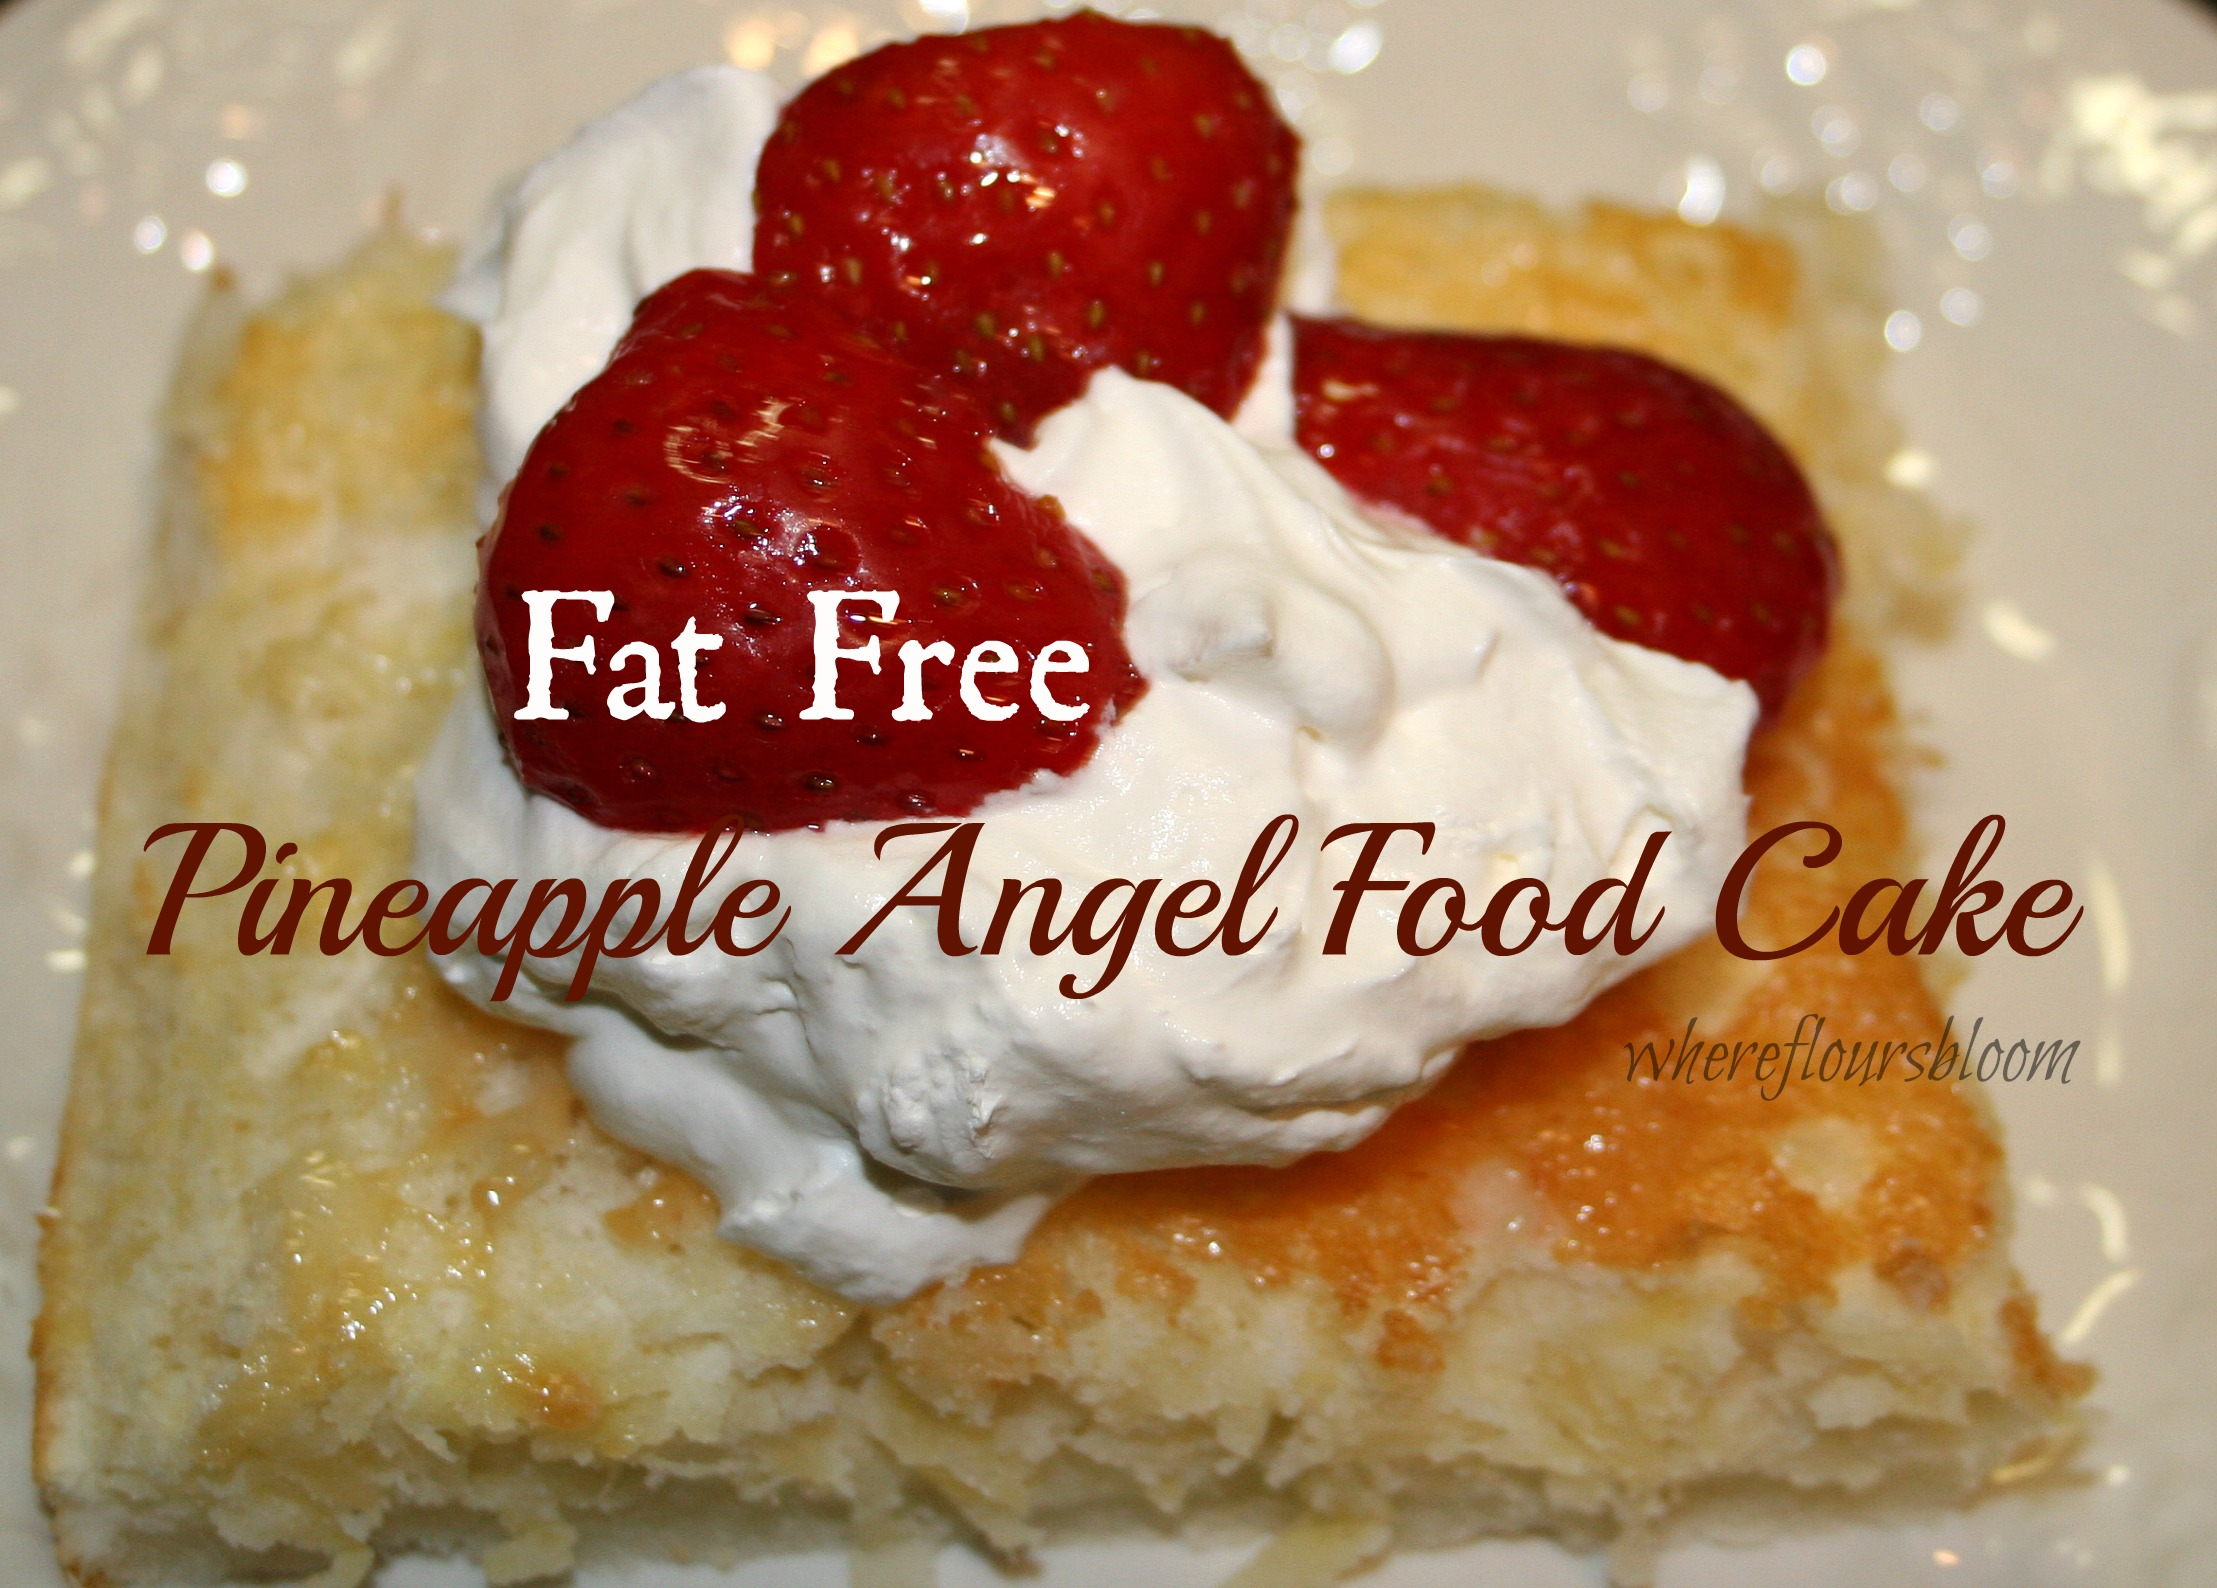 Can You Bake Angel Food Cake In Muffin Tins